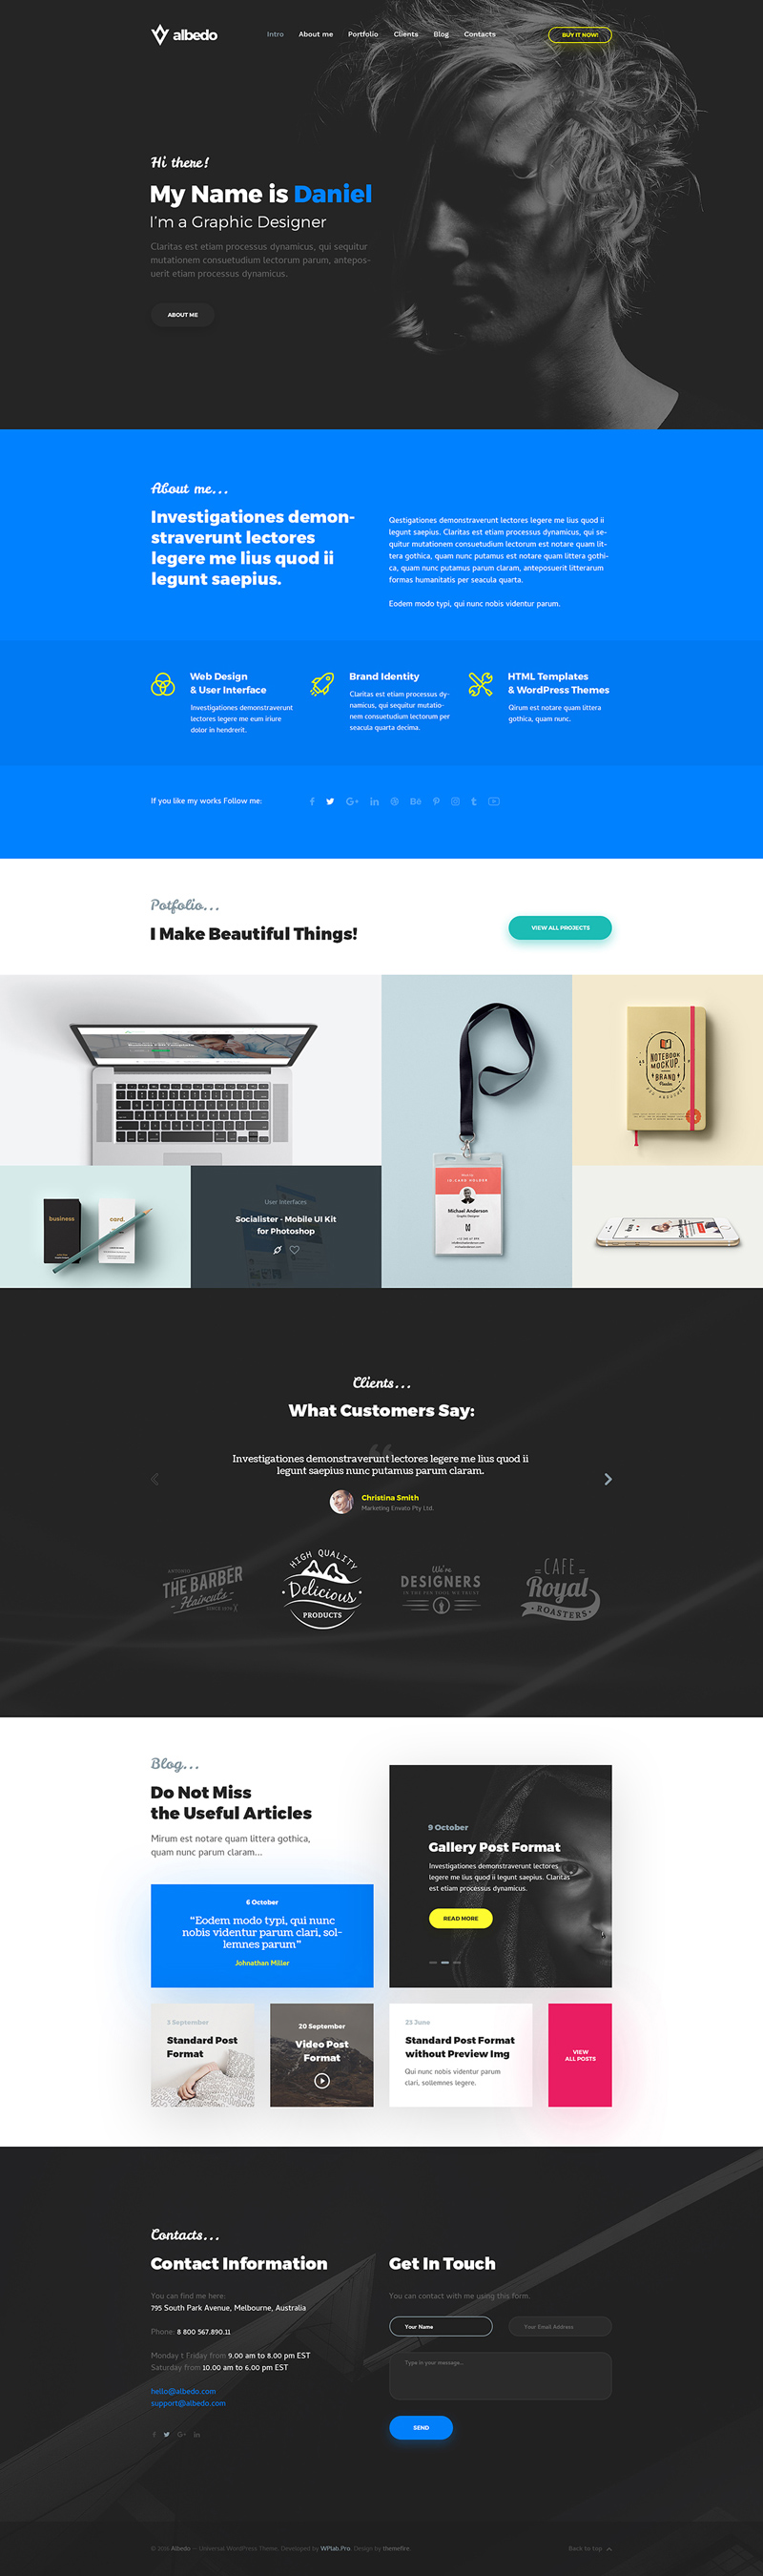 Albedo One Page Personal Template by Themefire - Freebie Supply